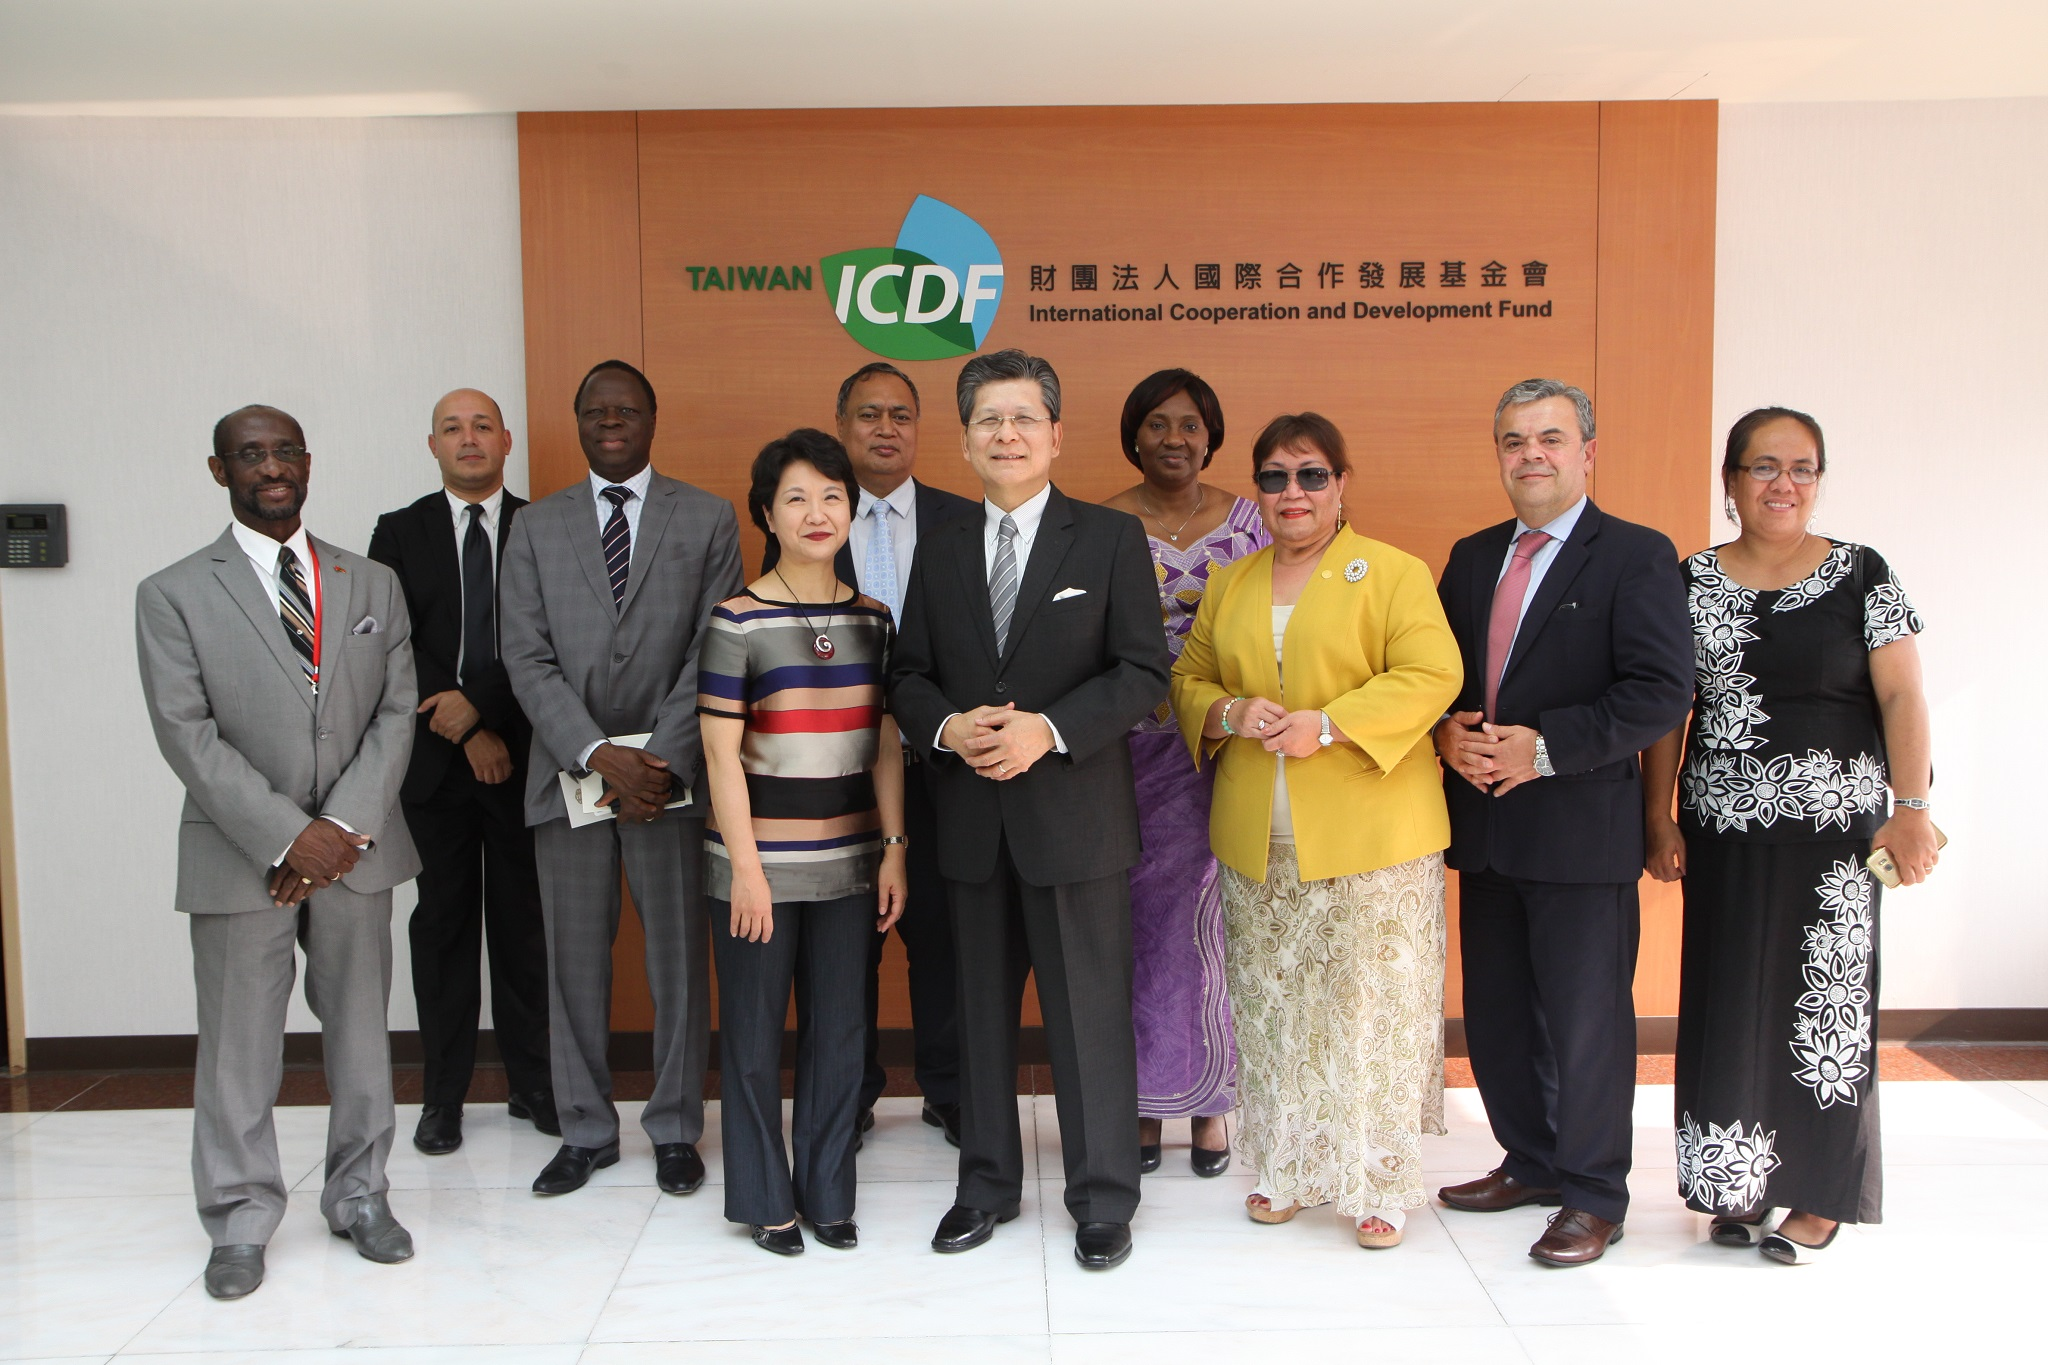 Permanent Representatives to the United Nations Visit the TaiwanICDF